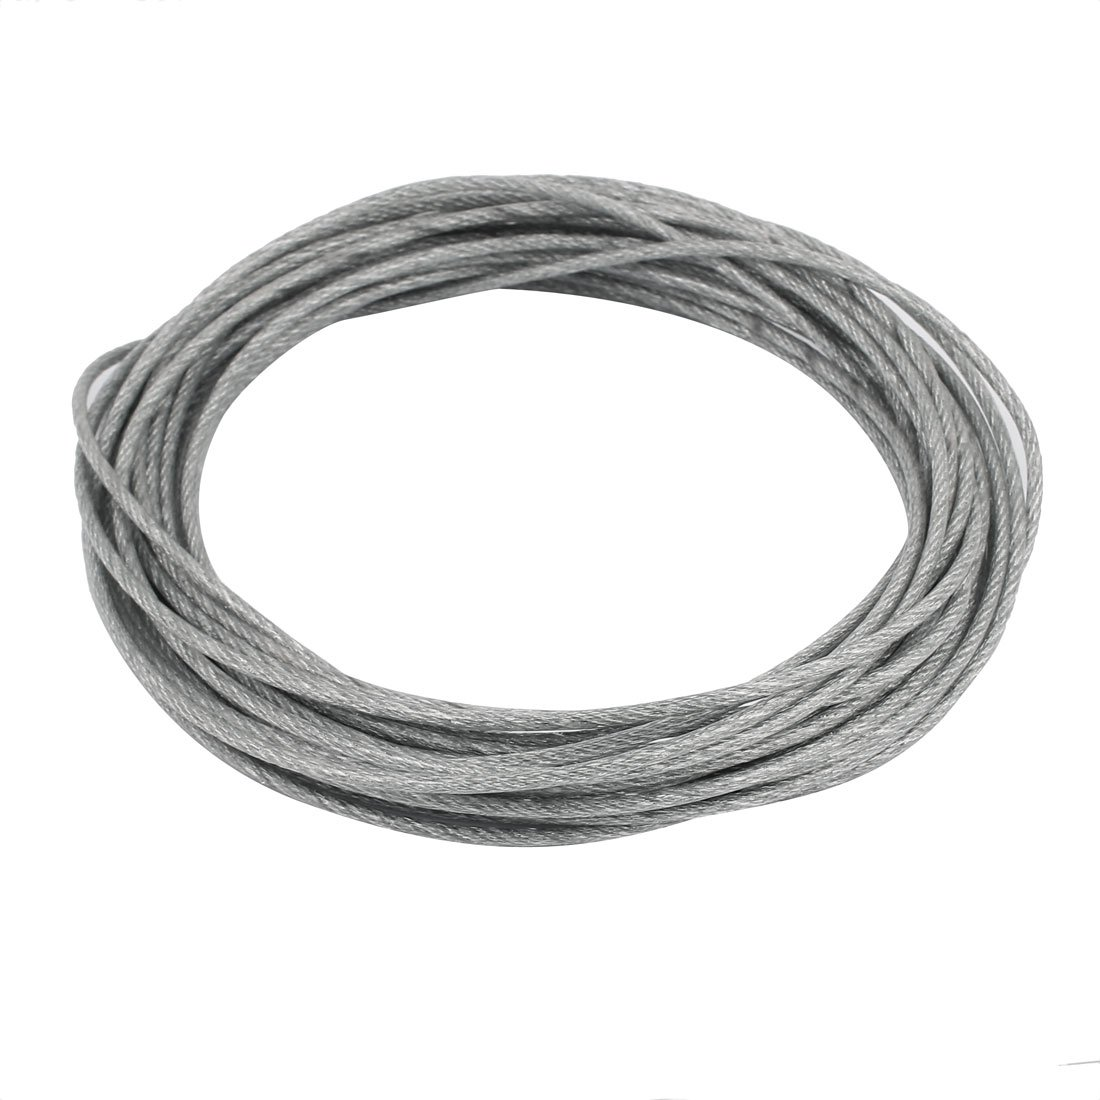 uxcell 10M Length 3mm Diameter Plastic Coated Flexible Steel Wire Cable Rope Silver Tone